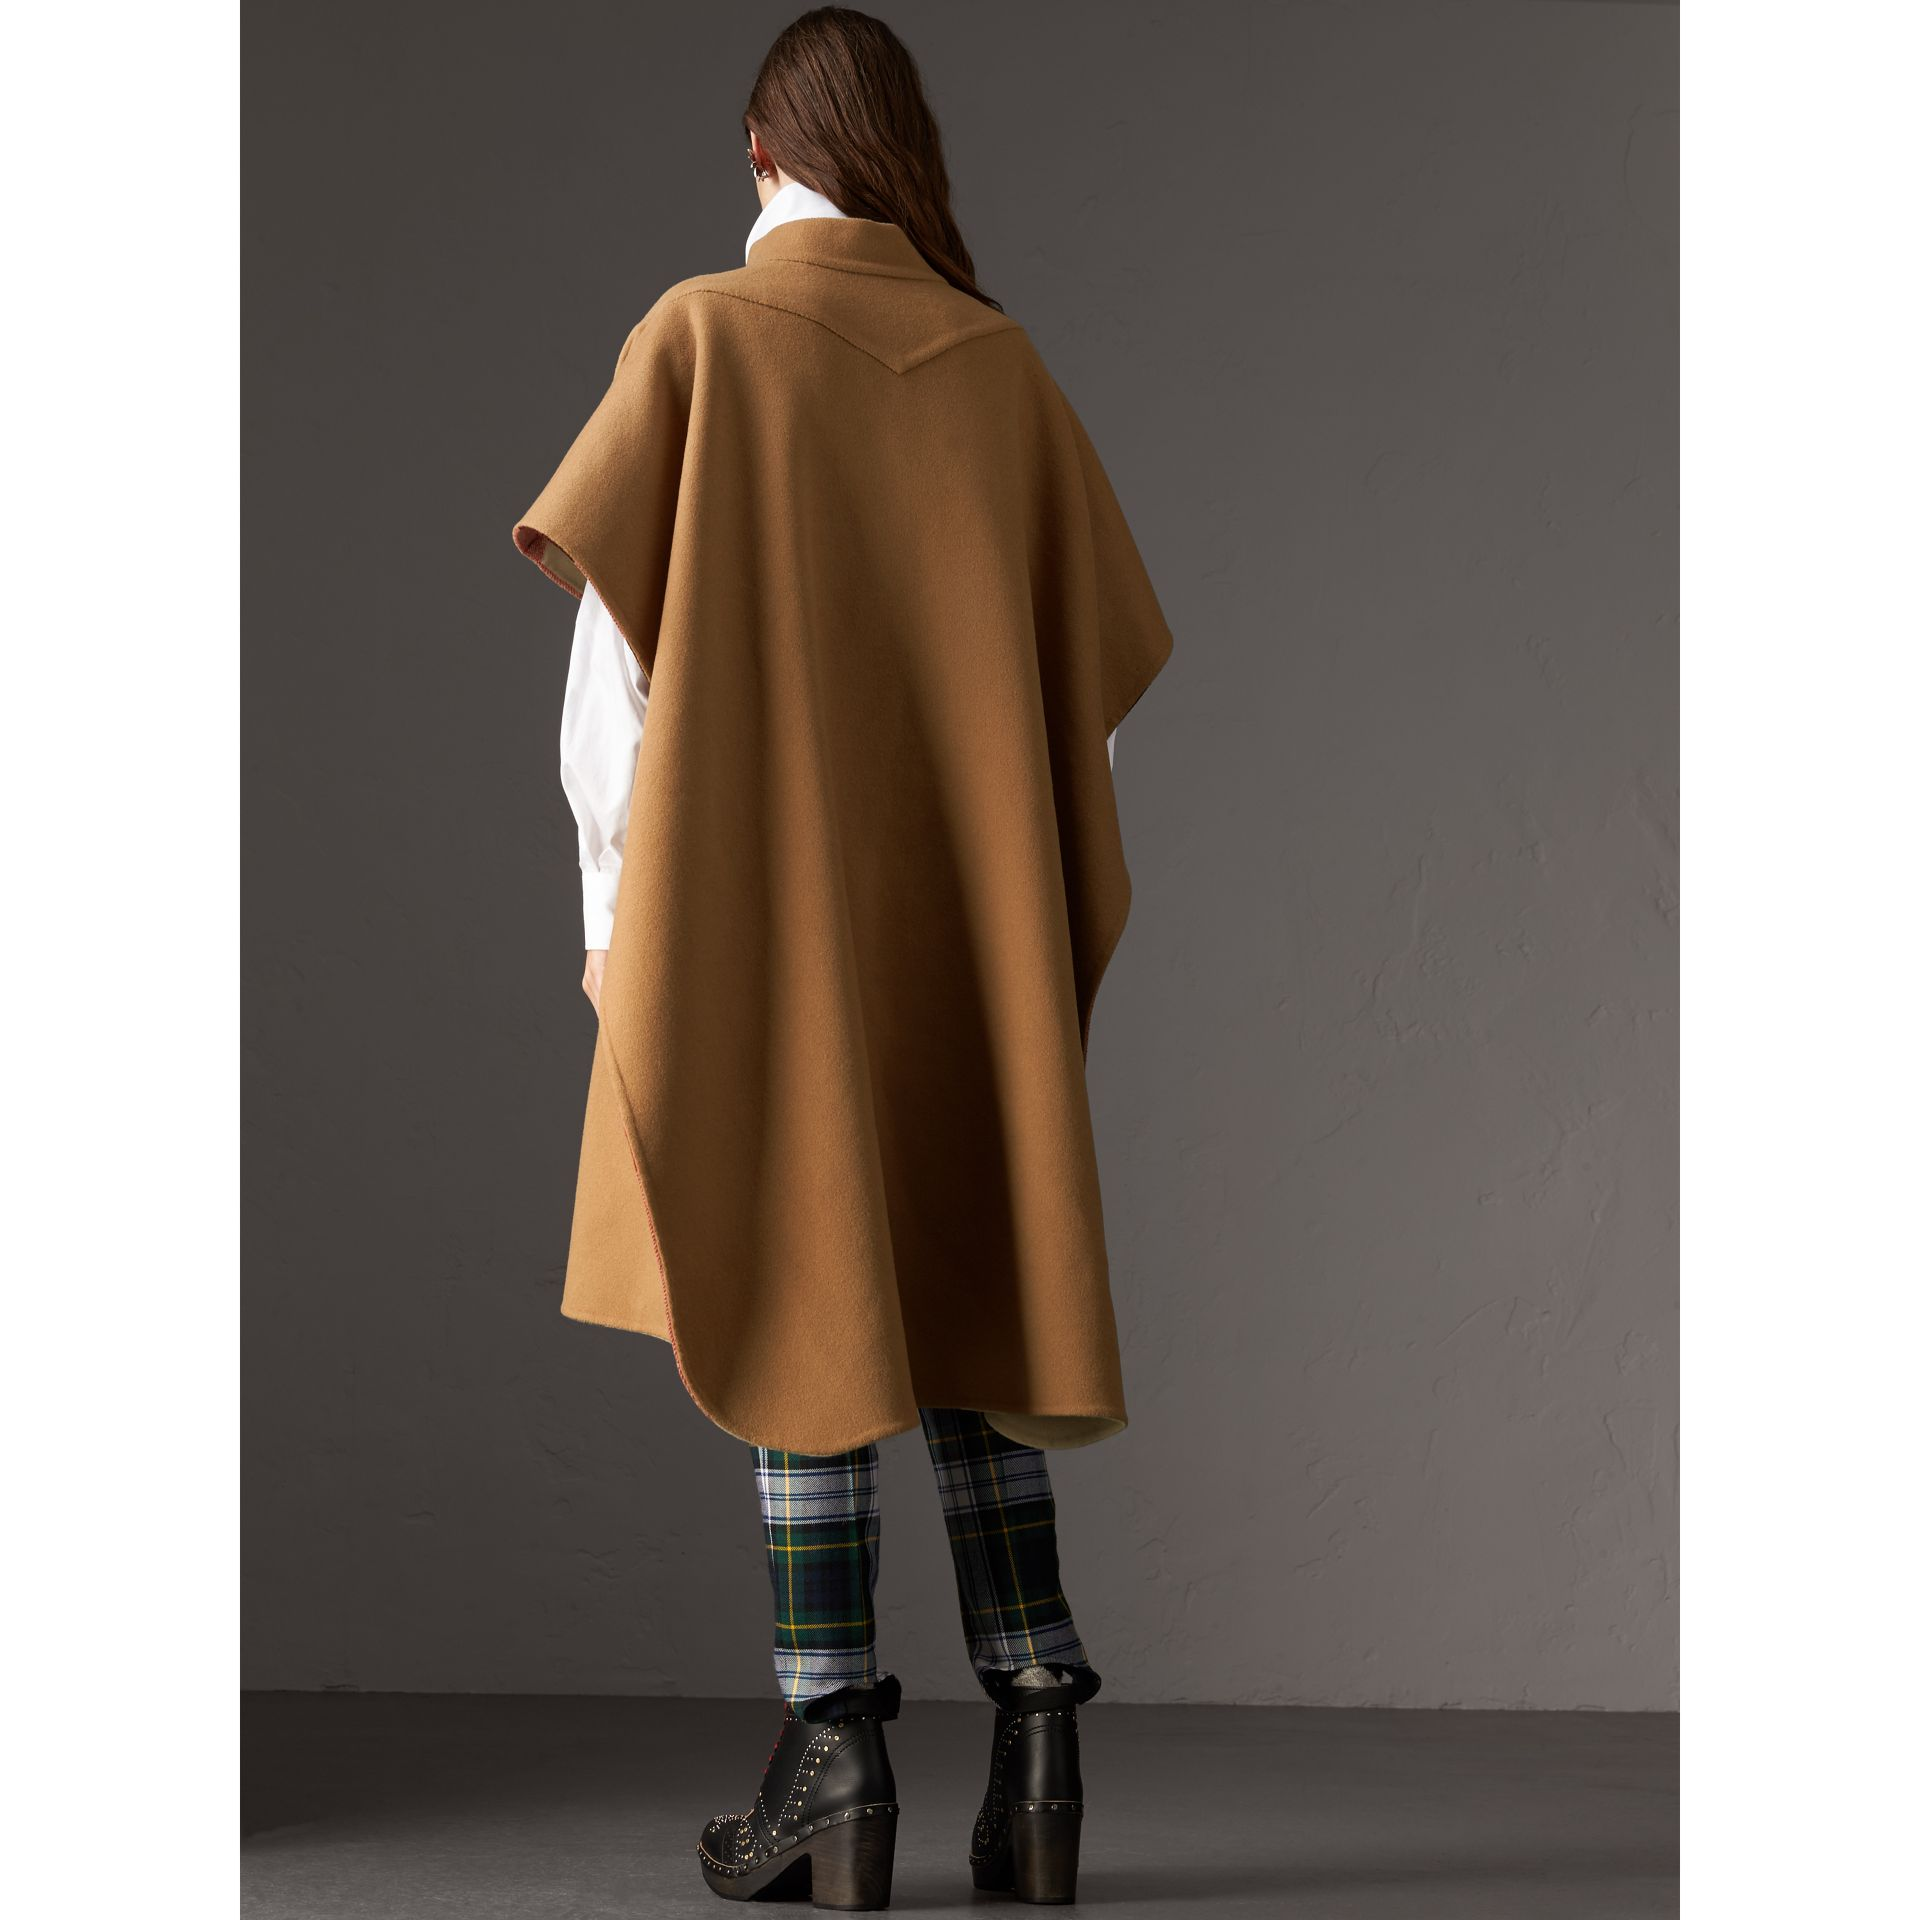 Reversible Check Oversized Poncho in Camel - Women | Burberry Australia - gallery image 2